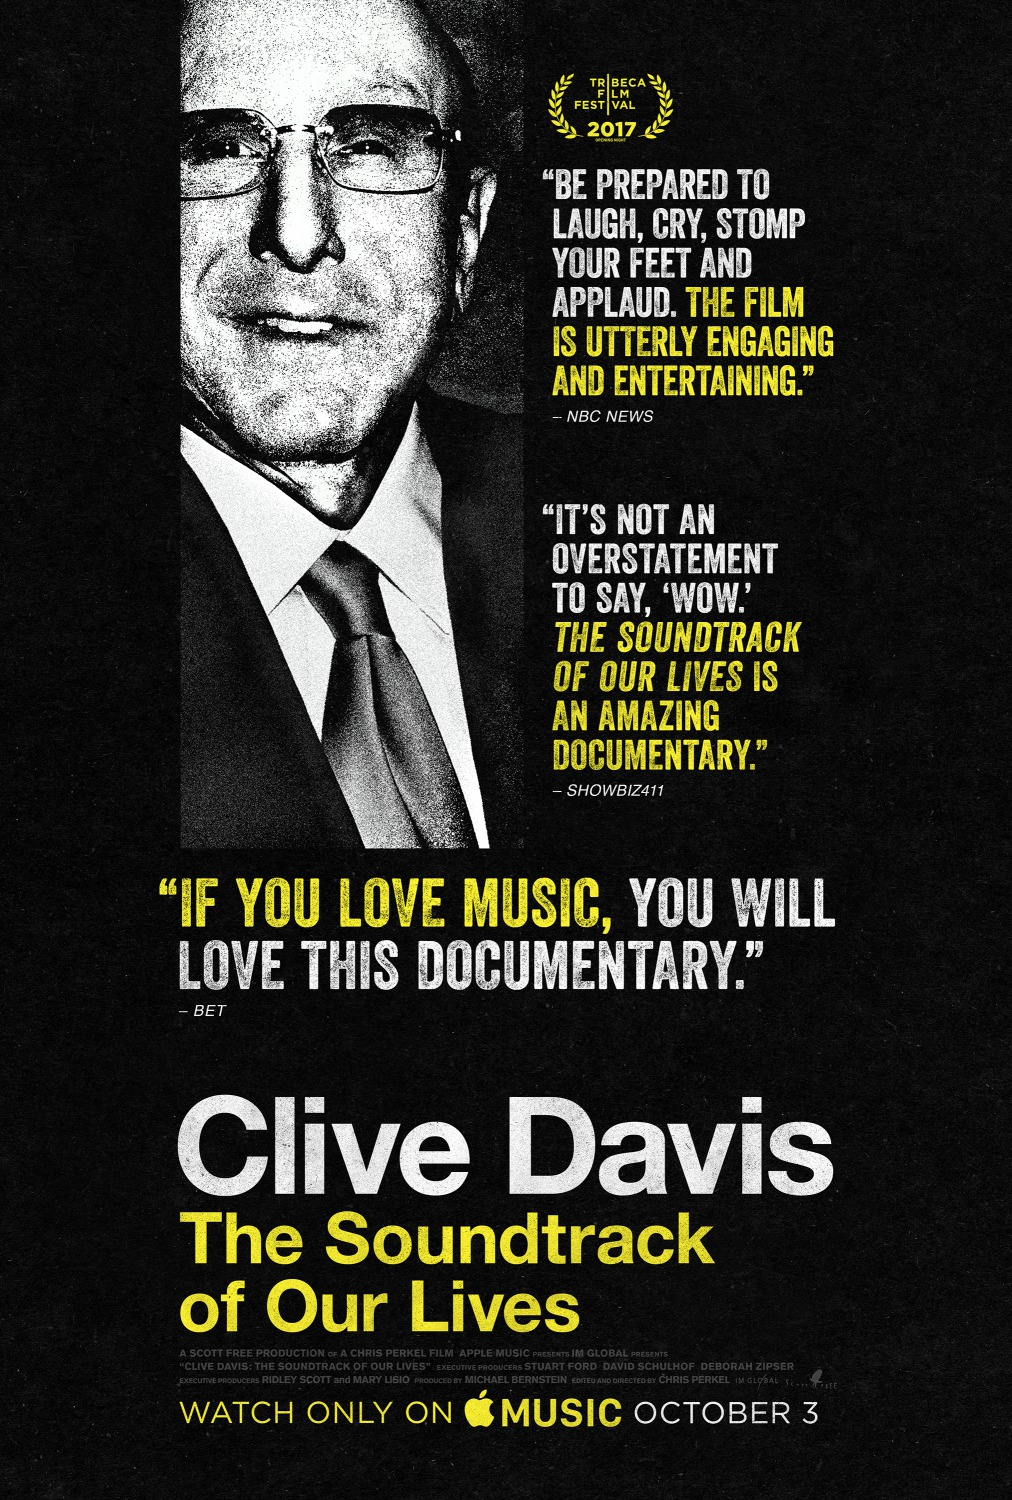 CLIVE DAVIS: THE SOUNDTRACK OF OUR LIVES thumbnail